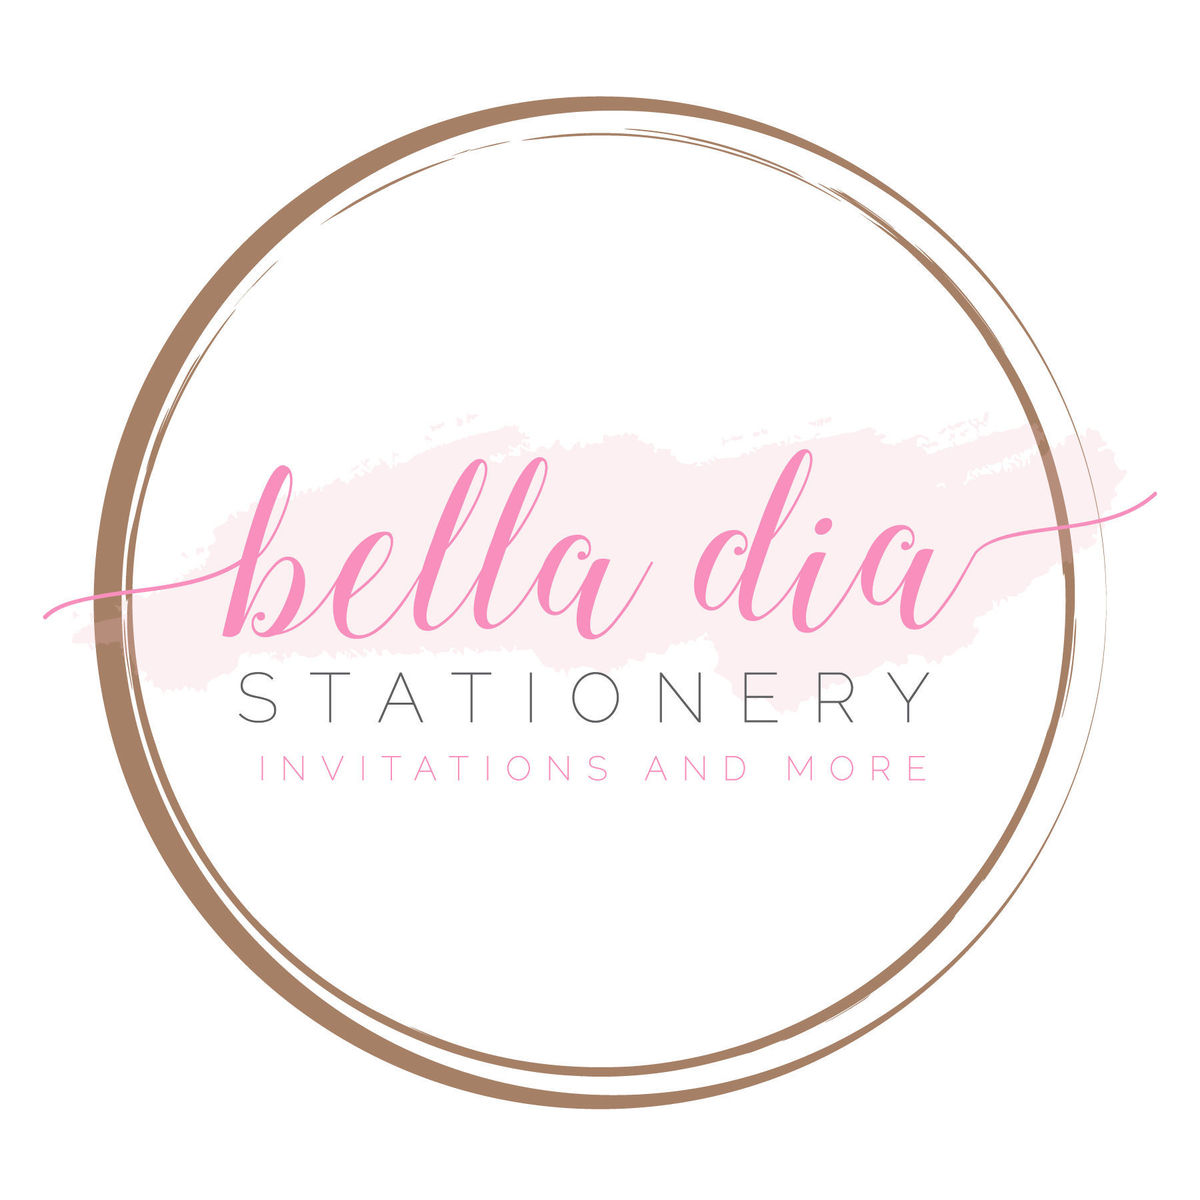 Houston wedding invitations reviews for 64 invitations bella dia stationery filmwisefo